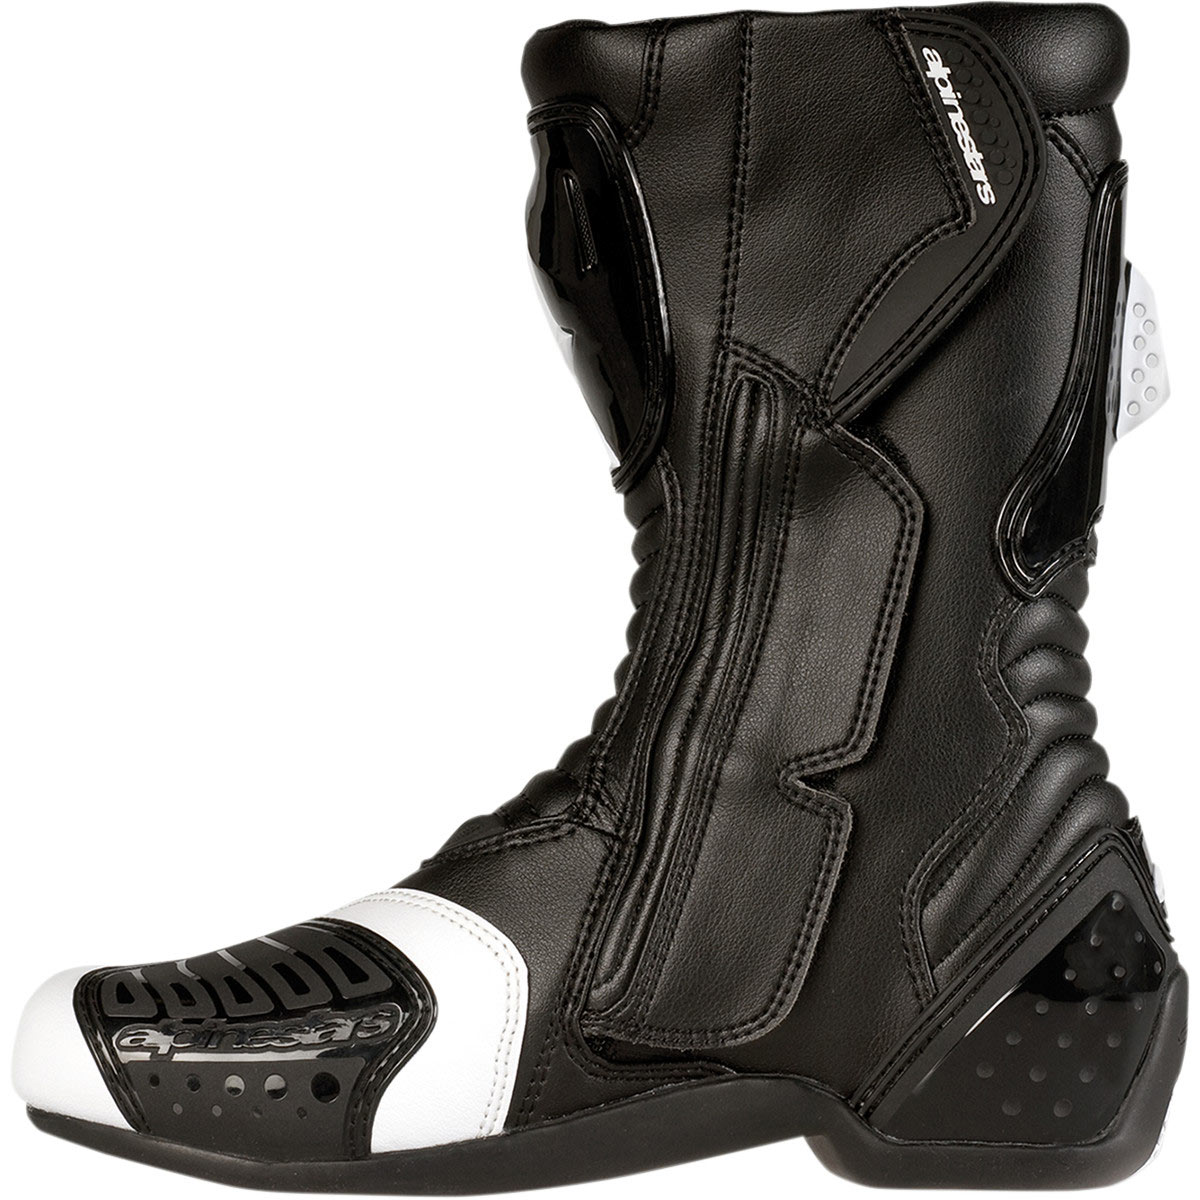 alpinestars women 39 s stella smx 5 boots black closeout. Black Bedroom Furniture Sets. Home Design Ideas